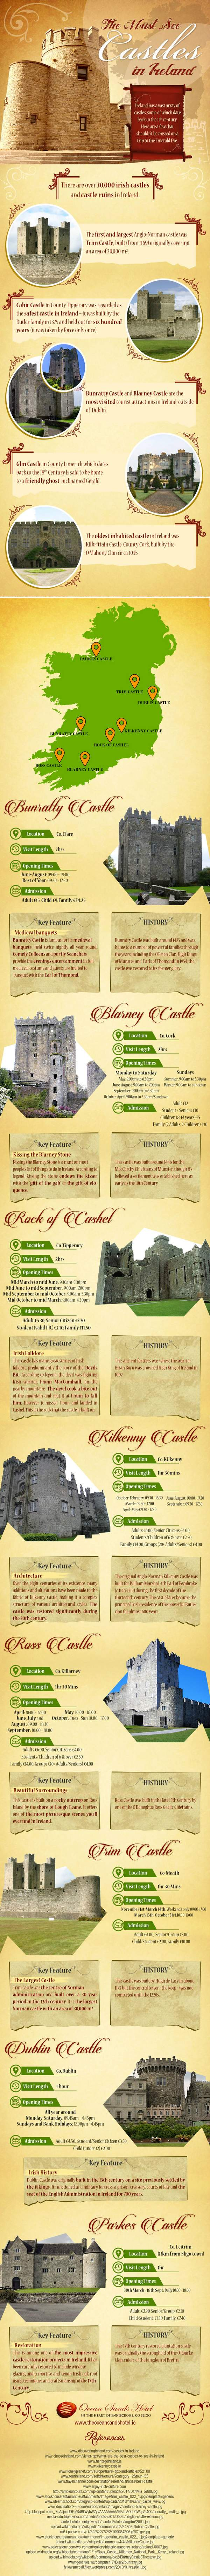 Castles-in-Ireland-Infographic